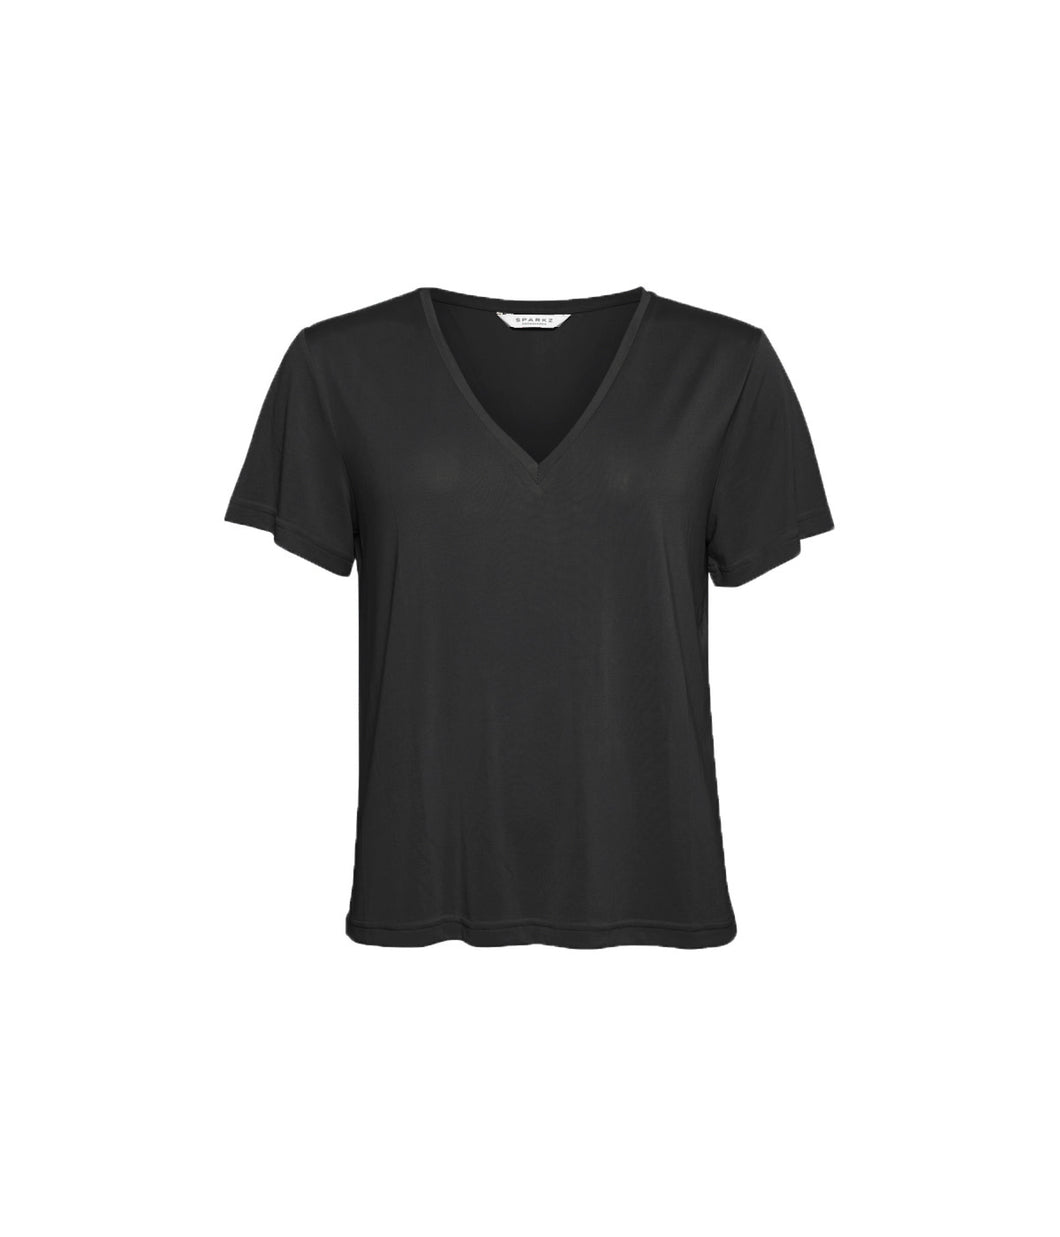 PETTI V NECK TEE 099 Black